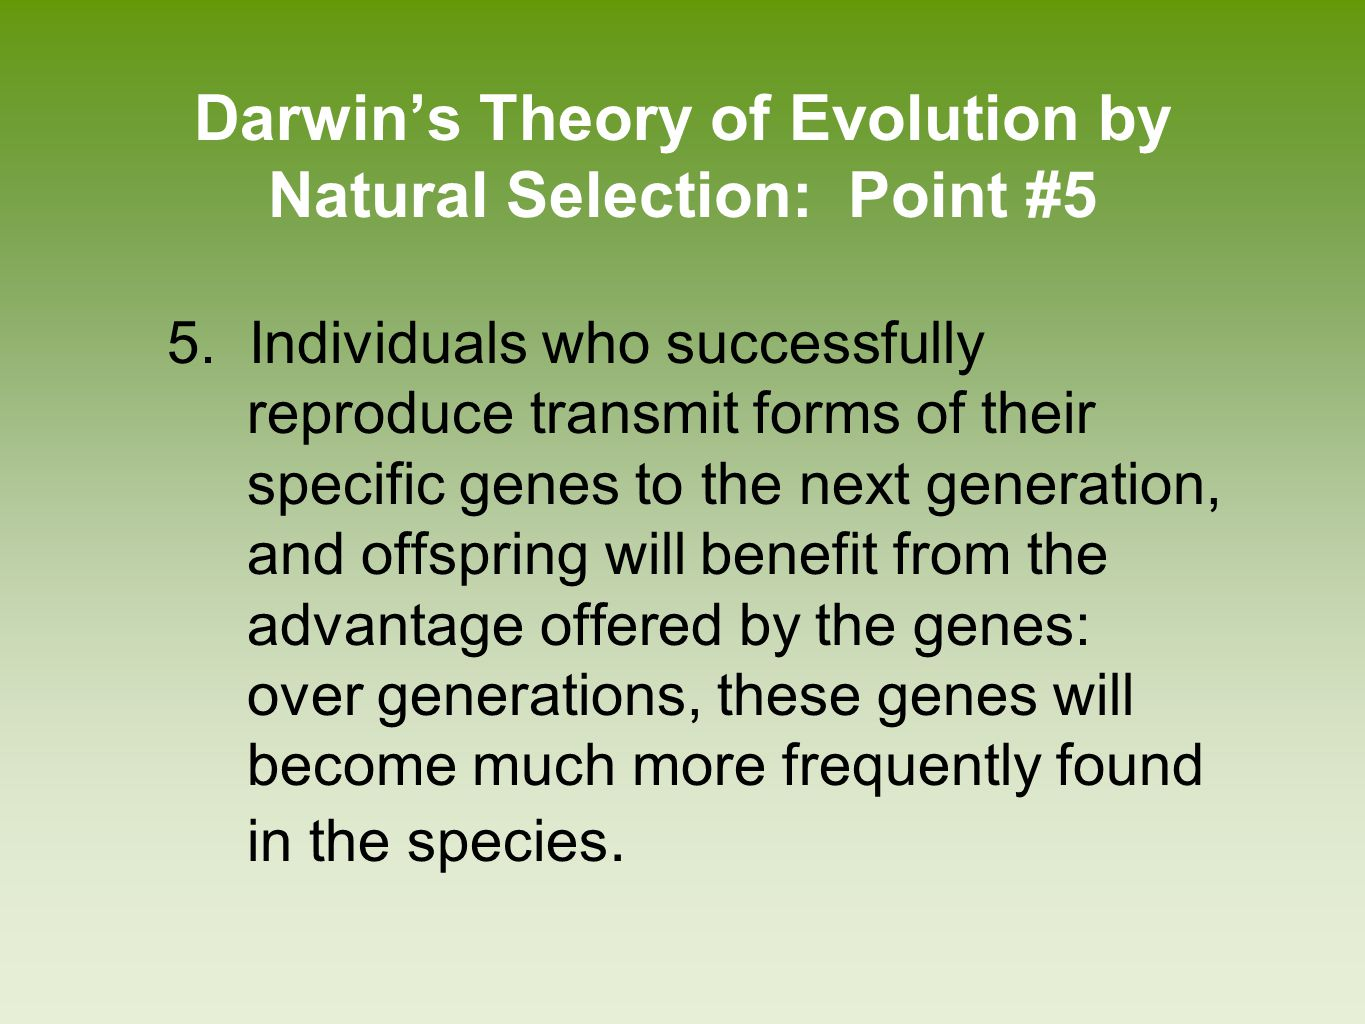 Darwin's Theory of Evolution by Natural Selection: Point #5